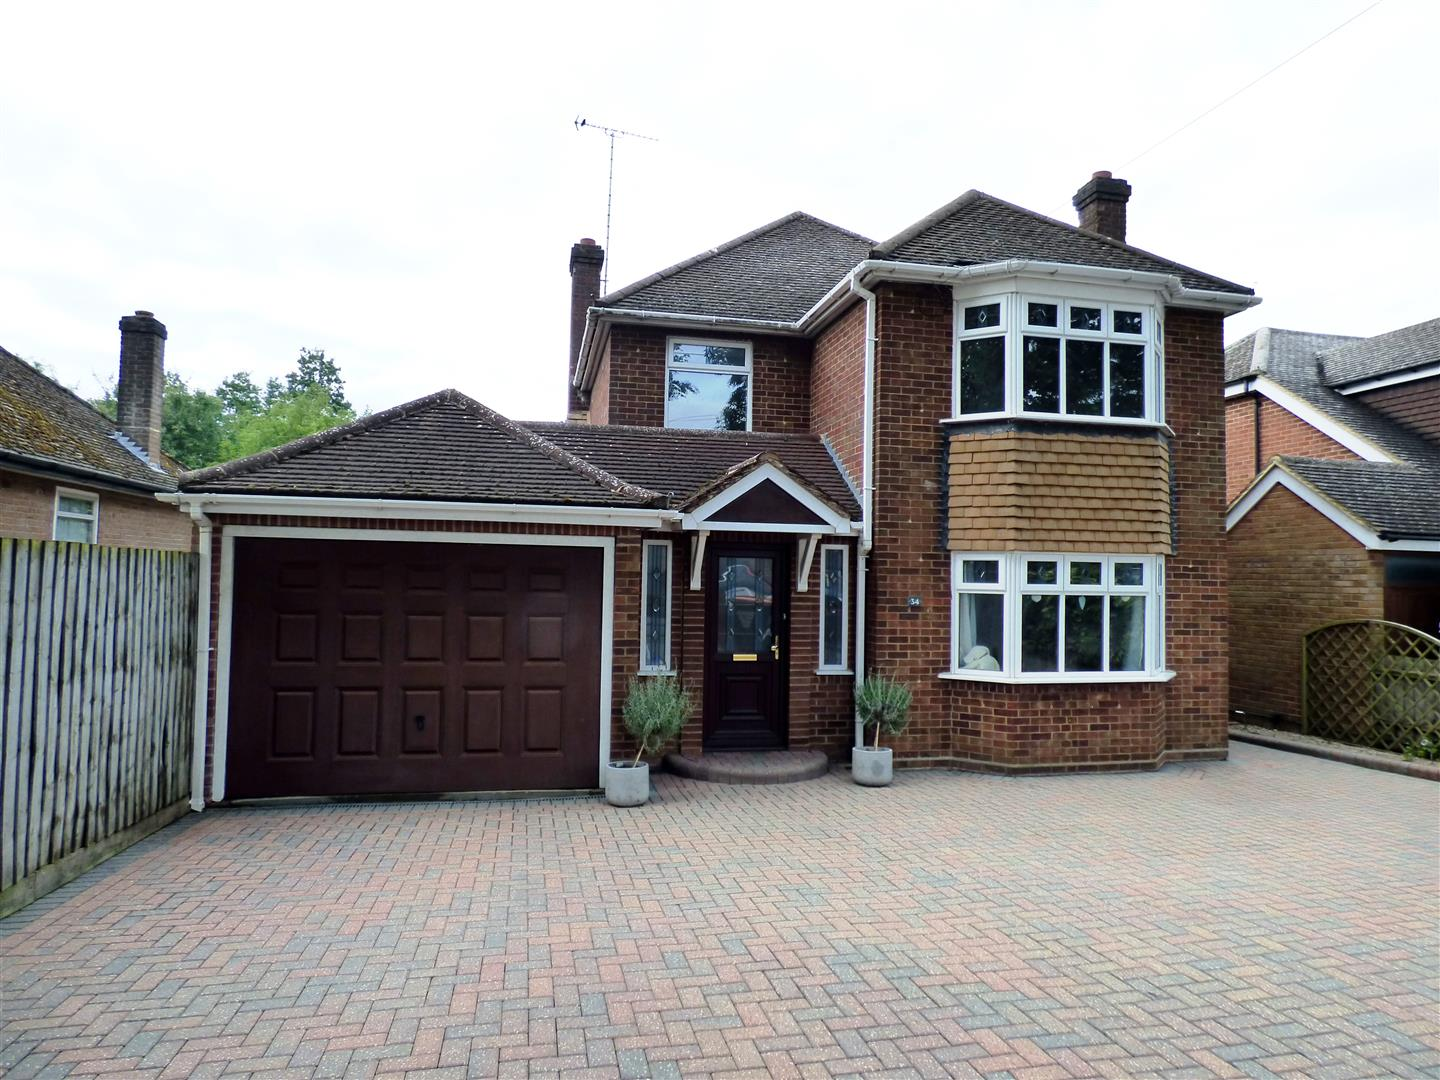 3 Bedrooms Detached House for sale in Canesworde Road, Dunstable